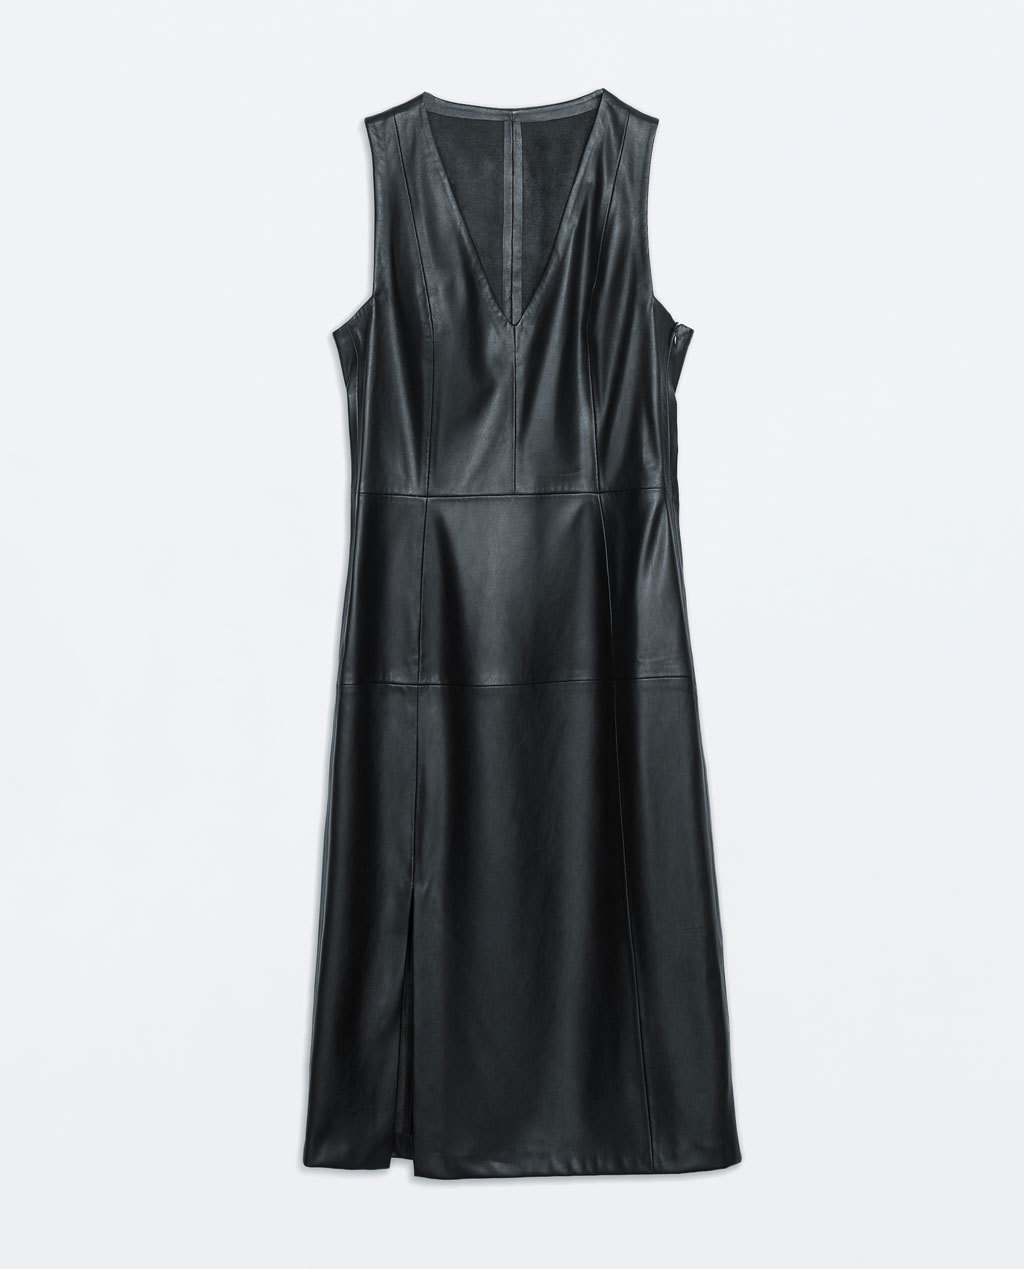 Faux Leather Dress - style: shift; length: below the knee; neckline: low v-neck; fit: tailored/fitted; pattern: plain; sleeve style: sleeveless; hip detail: draws attention to hips; predominant colour: black; occasions: evening, creative work; sleeve length: sleeveless; texture group: leather; pattern type: fabric; fibres: pvc/polyurethene - 100%; season: a/w 2014